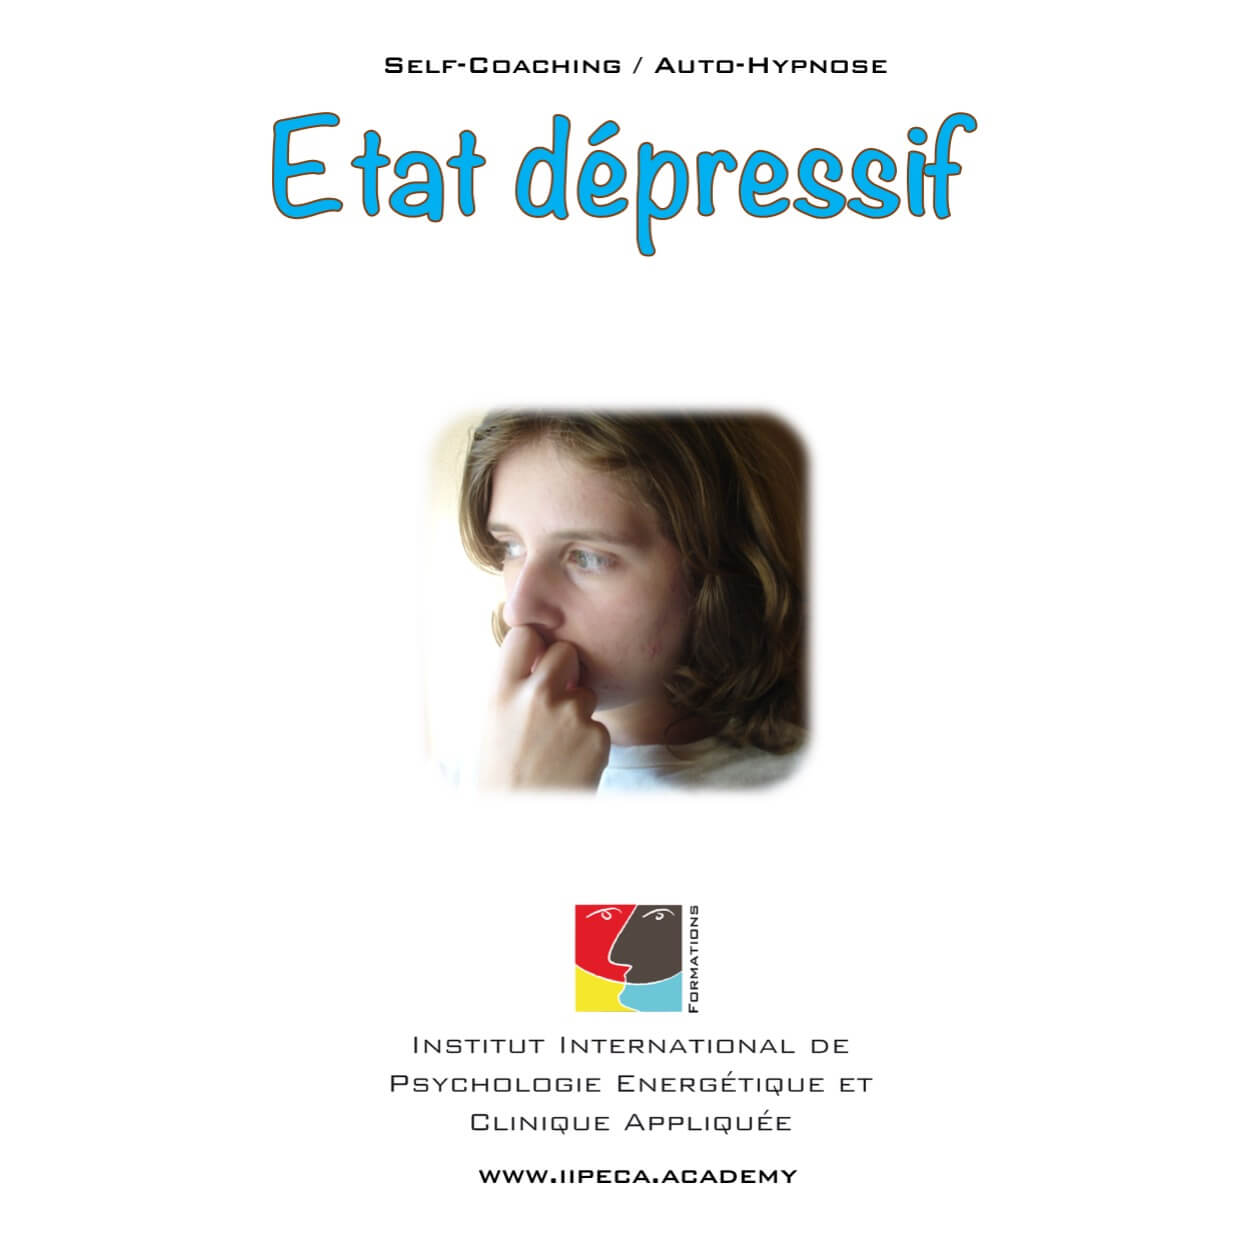 etat dépressif dépression iipeca academy mp3 self coaching auto-hypnose